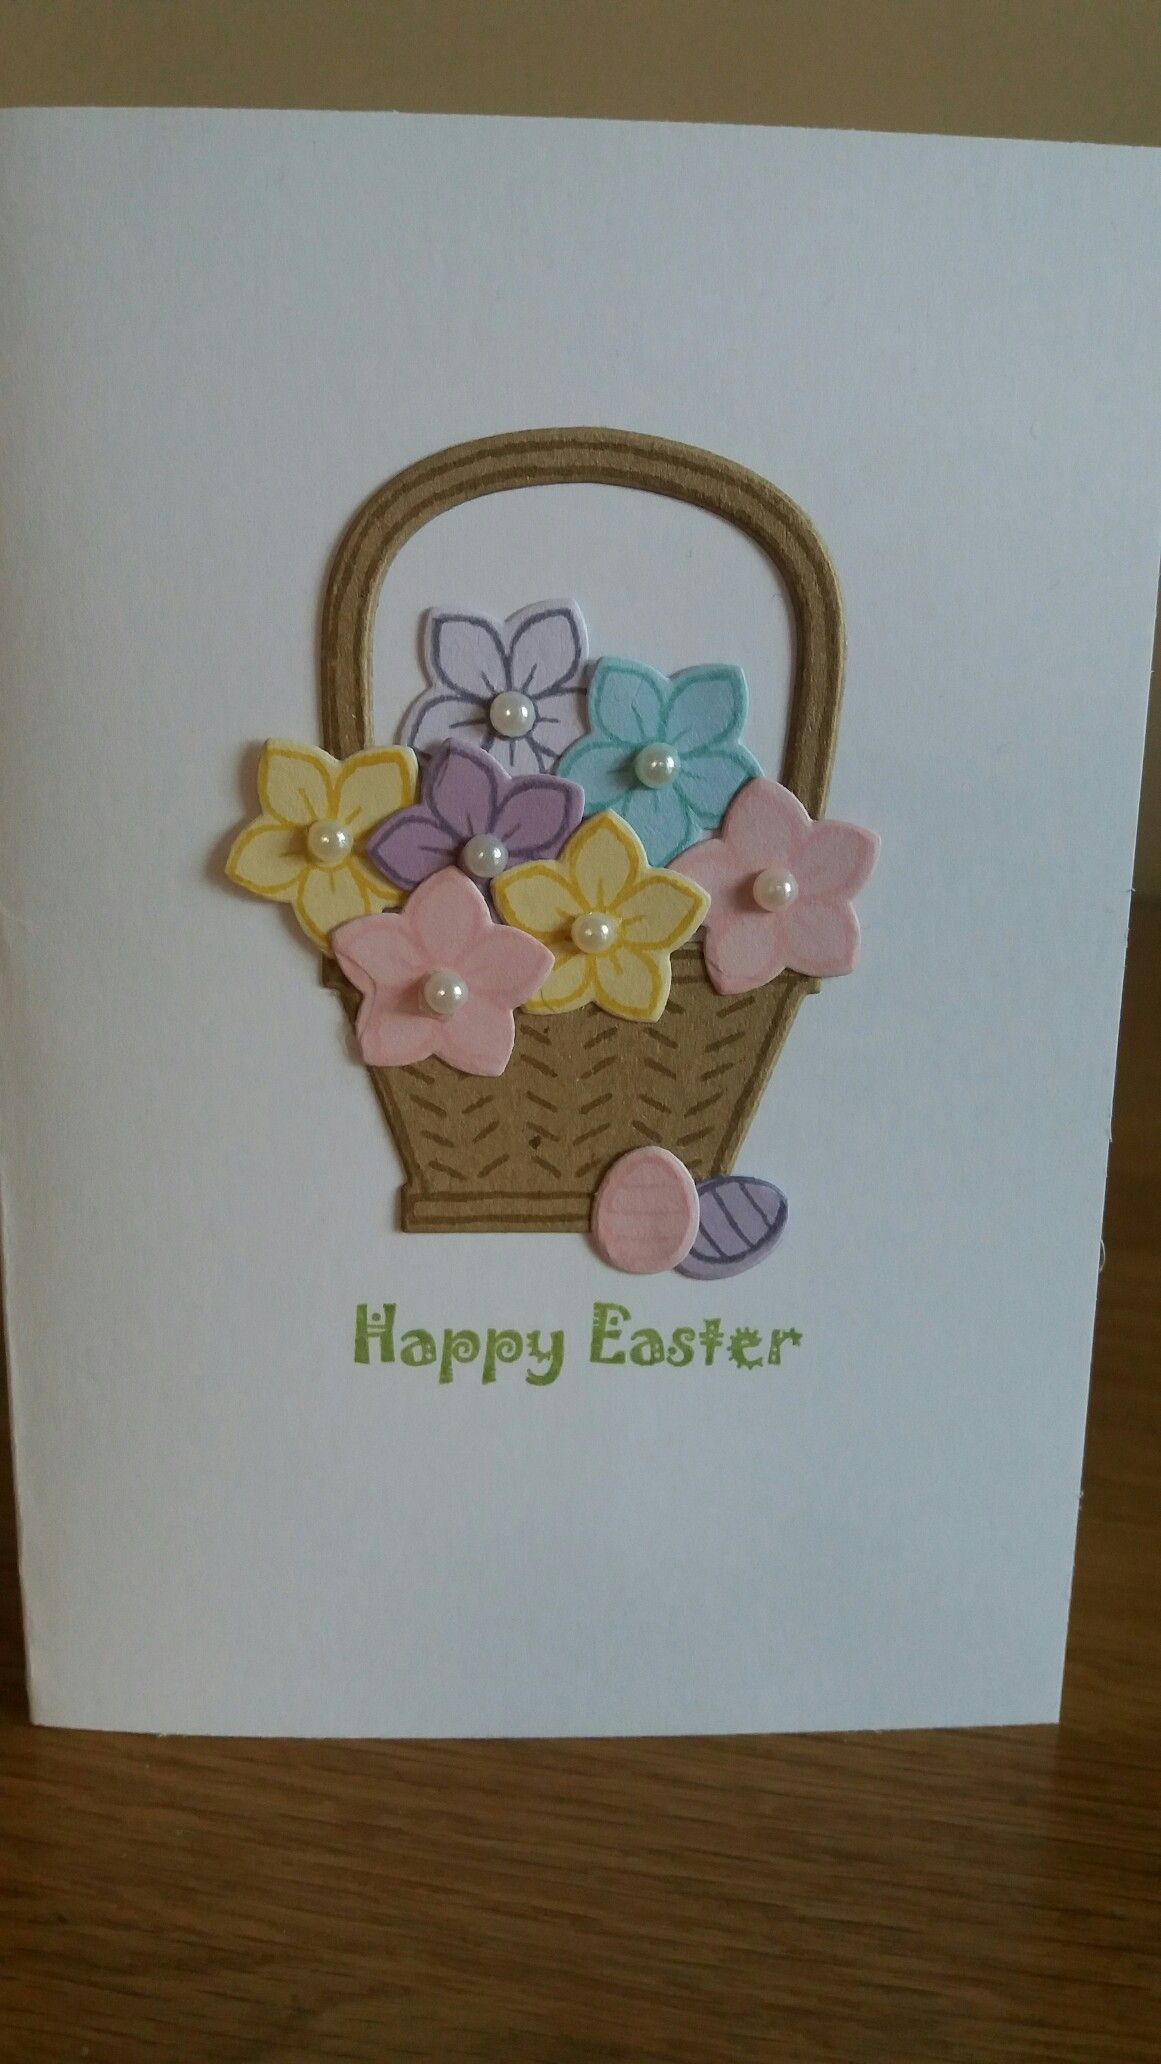 Happy Easter Card Printable Easter Cards Printable Easter Cards Happy Easter Card